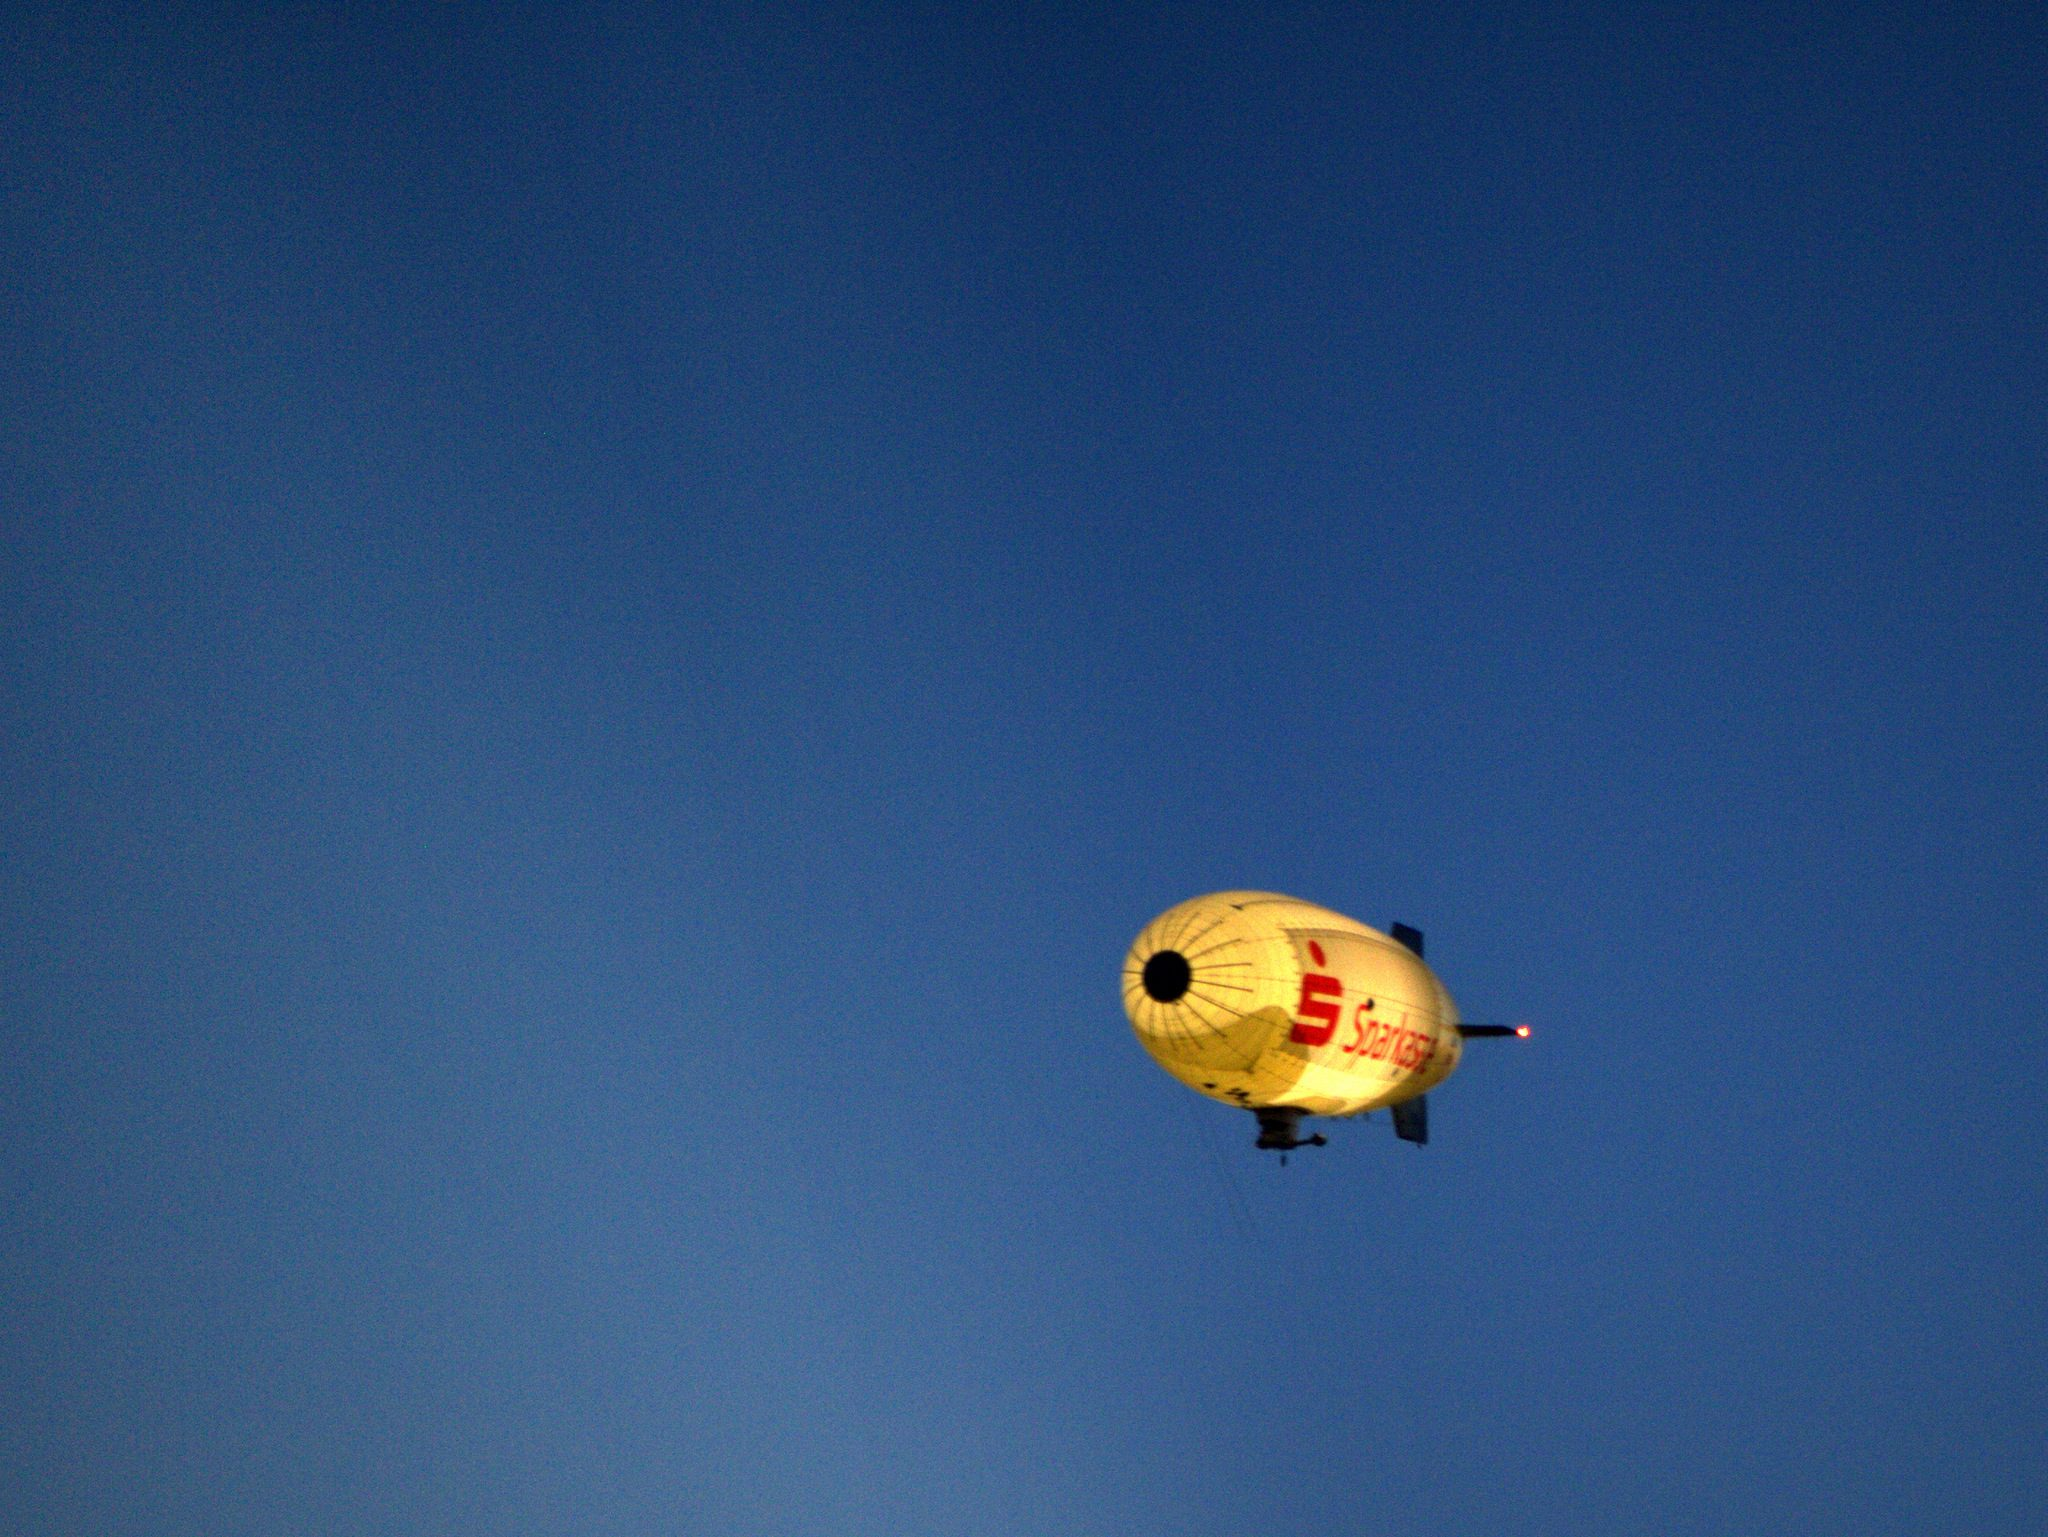 Blimp Theo mit Beleuchtung,